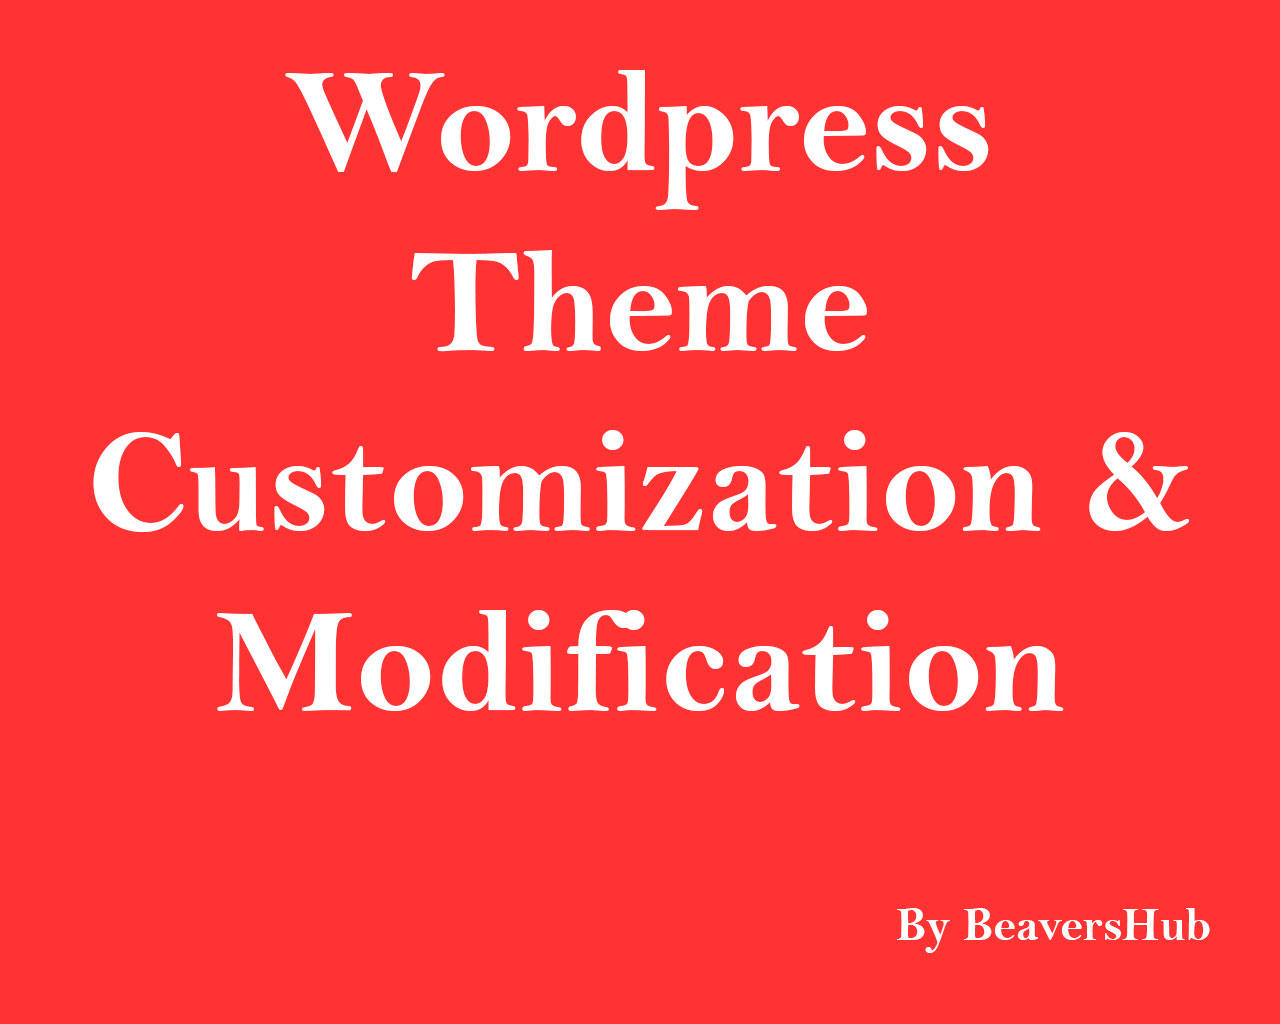 Wordpress Theme Customization & Modification by ArtyChristina - 105783